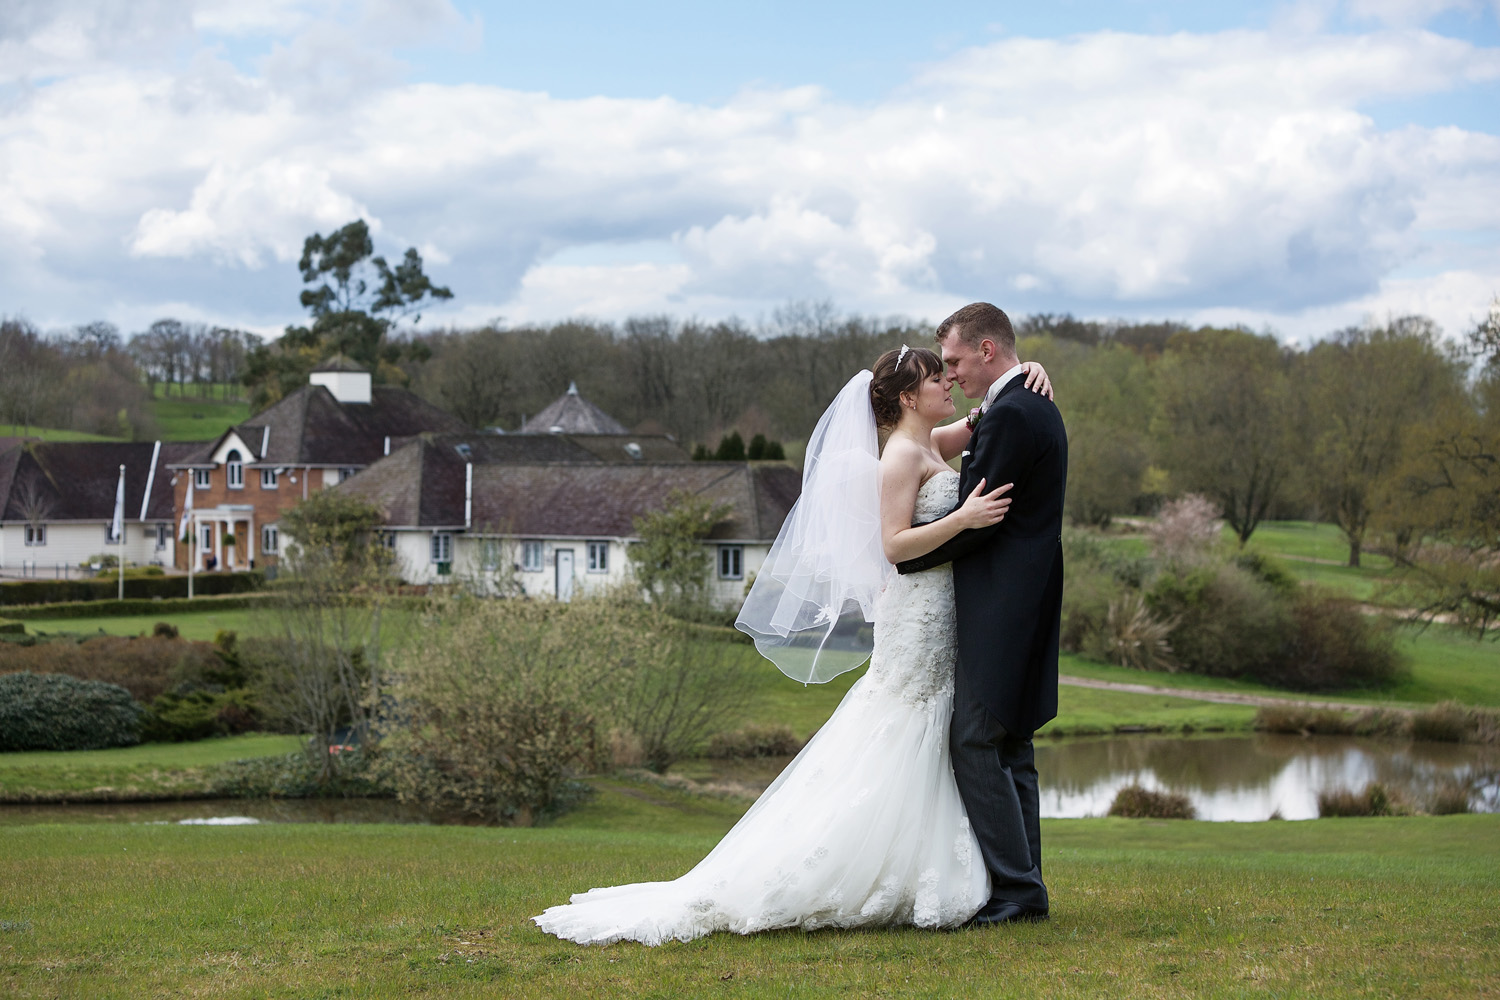 Sandford_Springs_Wedding_Photographer_Newbury_001.jpg